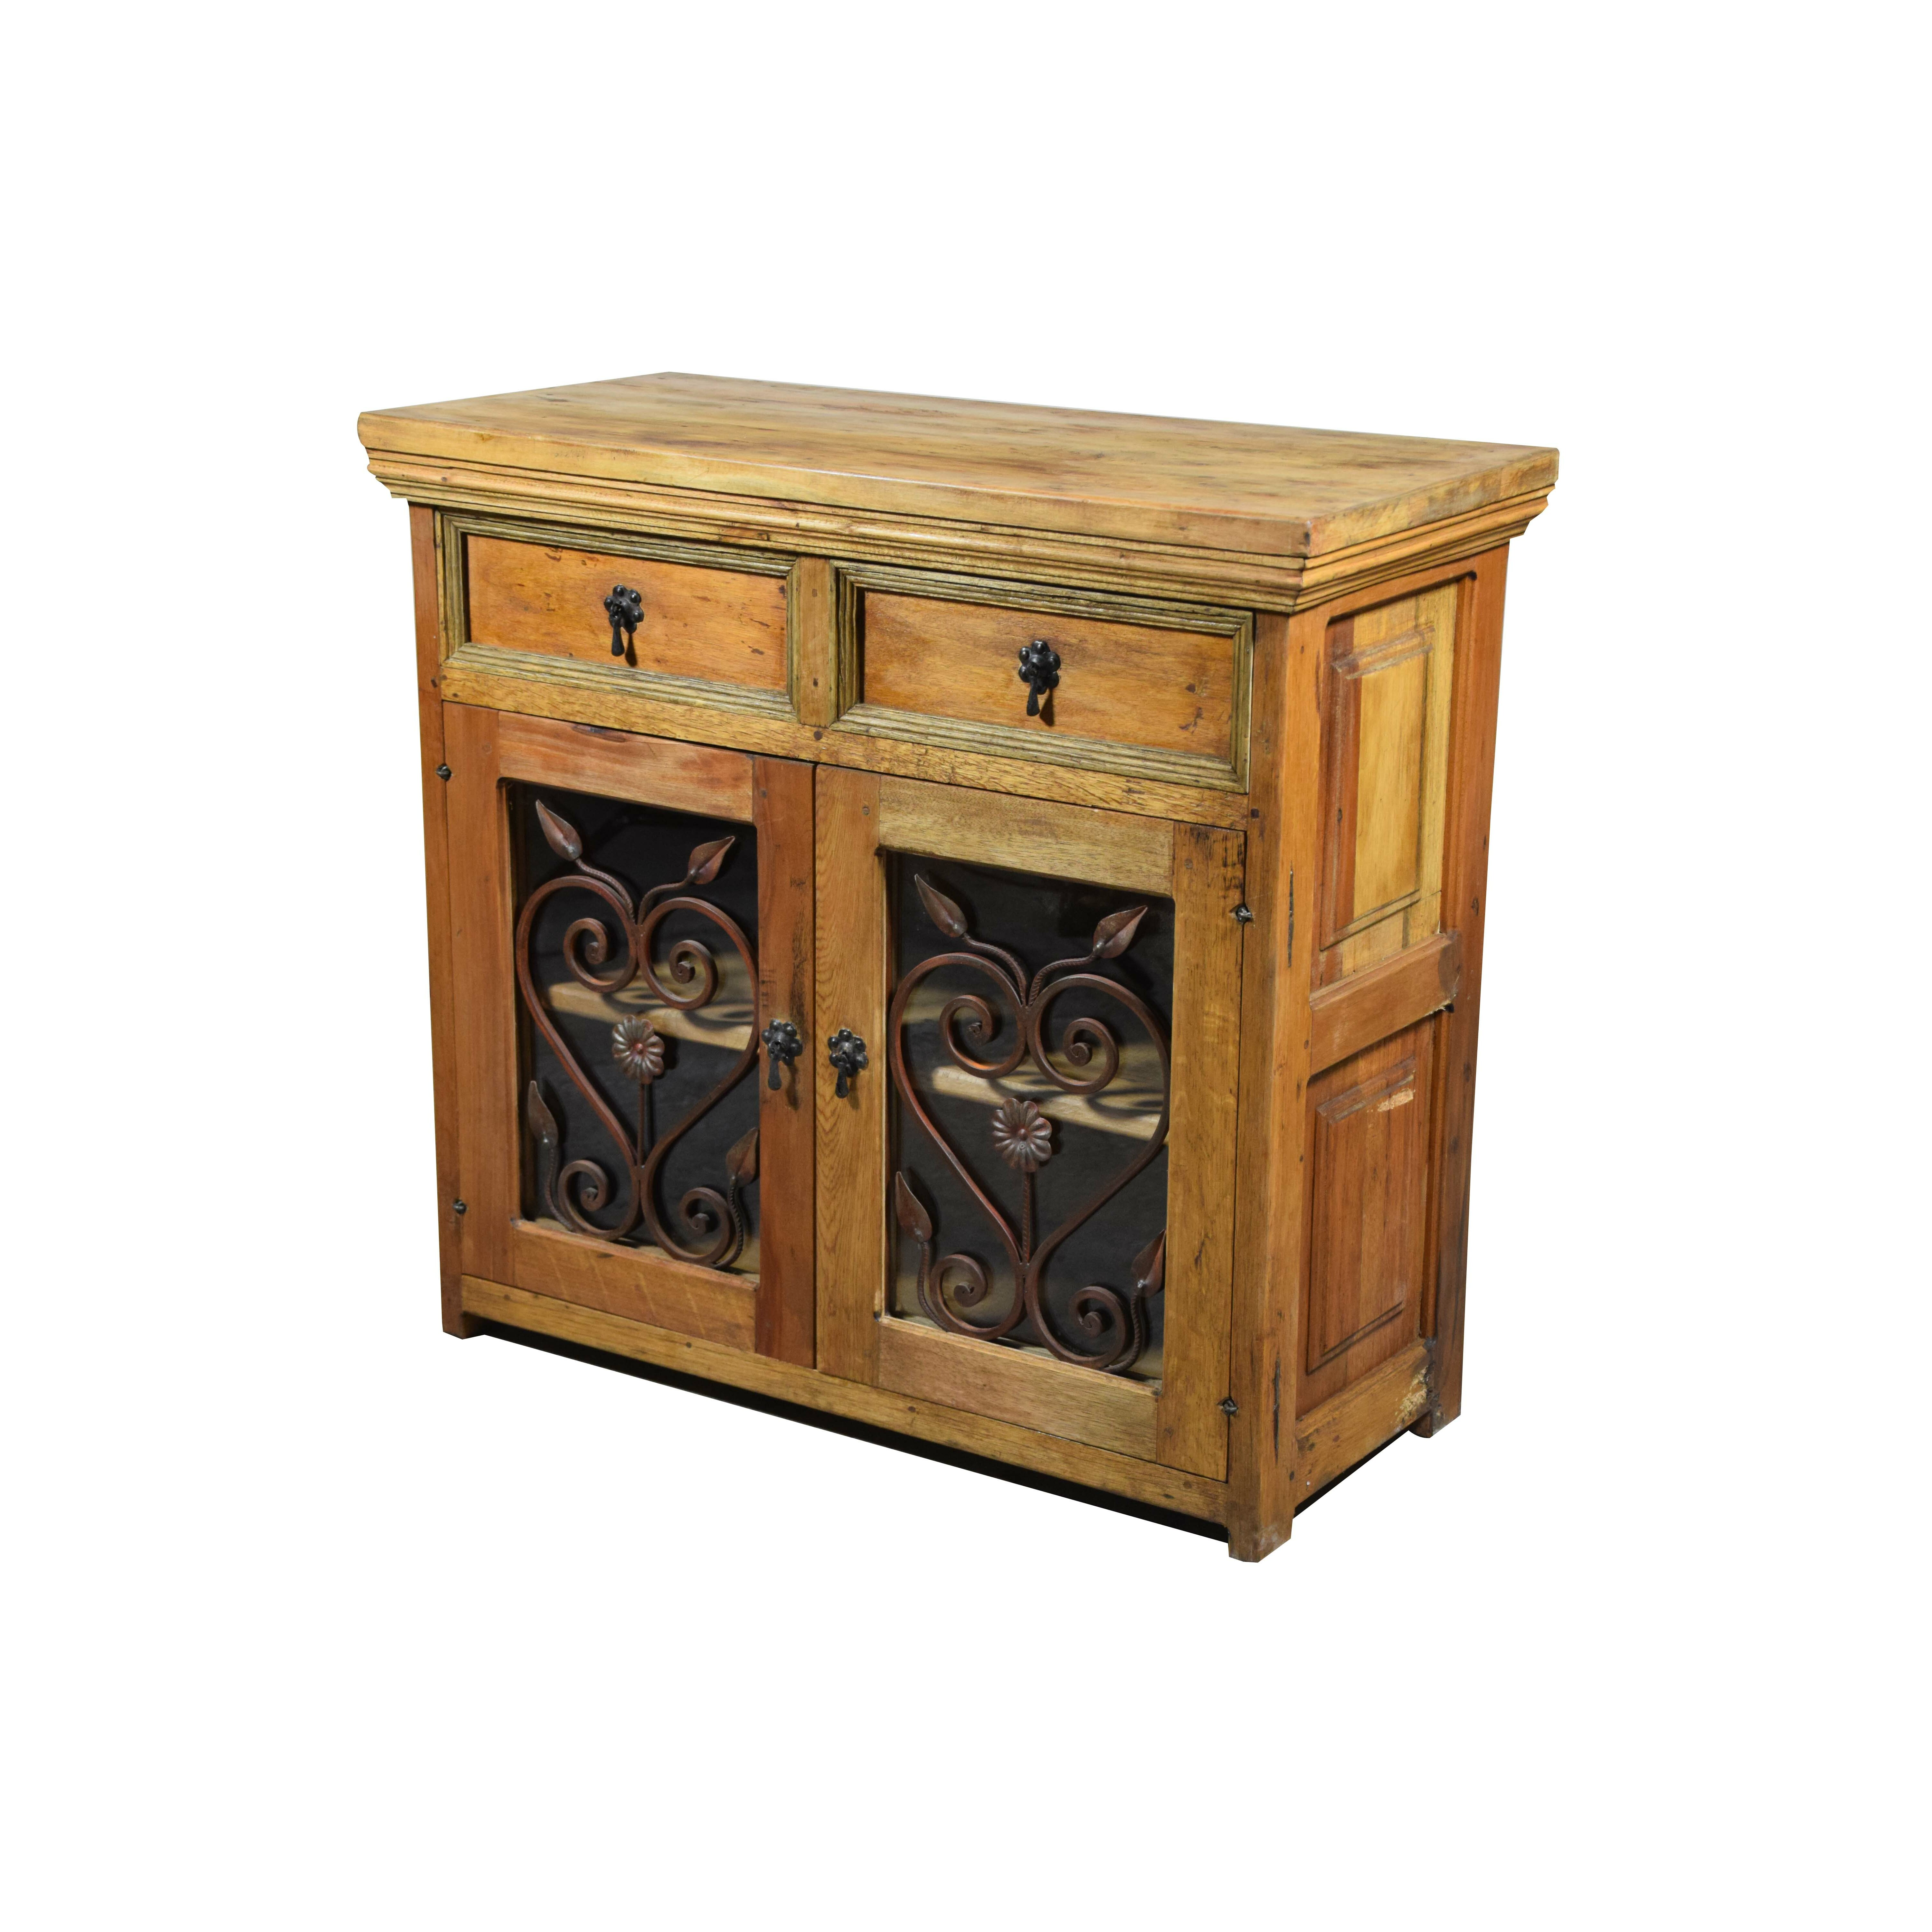 Artesano home decor sideboard reviews wayfair for Home furnishing accessories